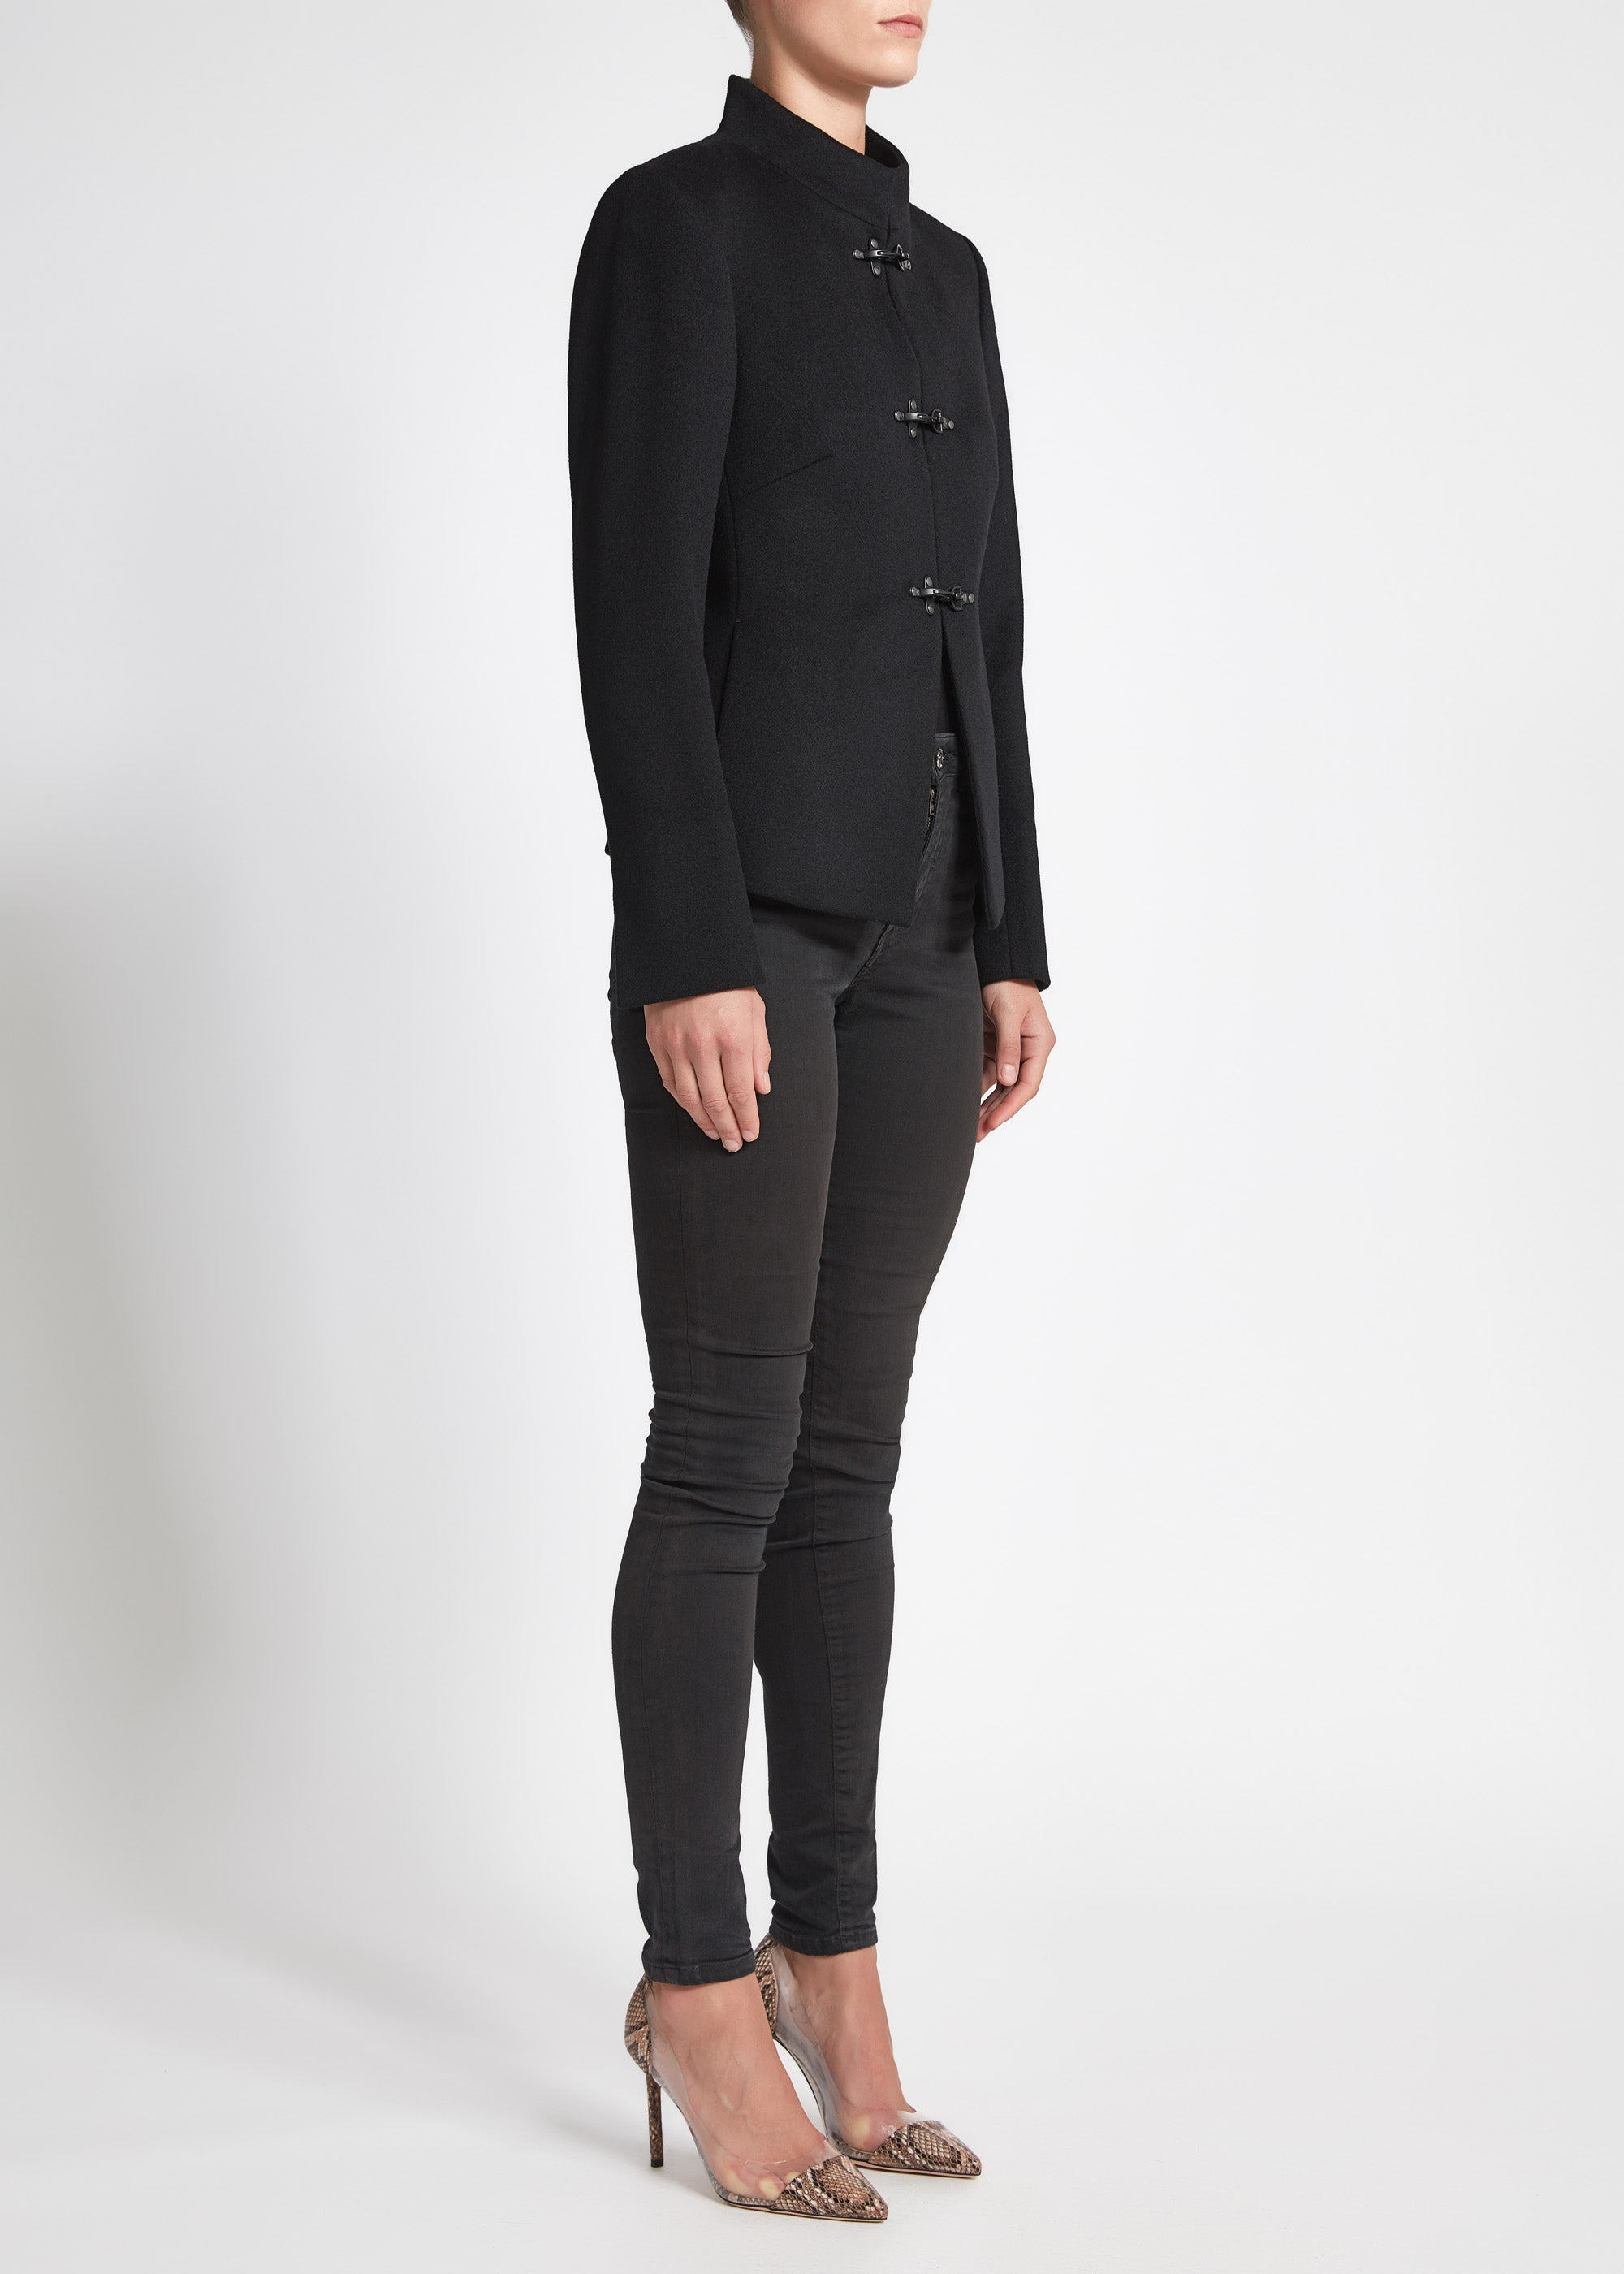 Chiara (Crop) Coat - Black